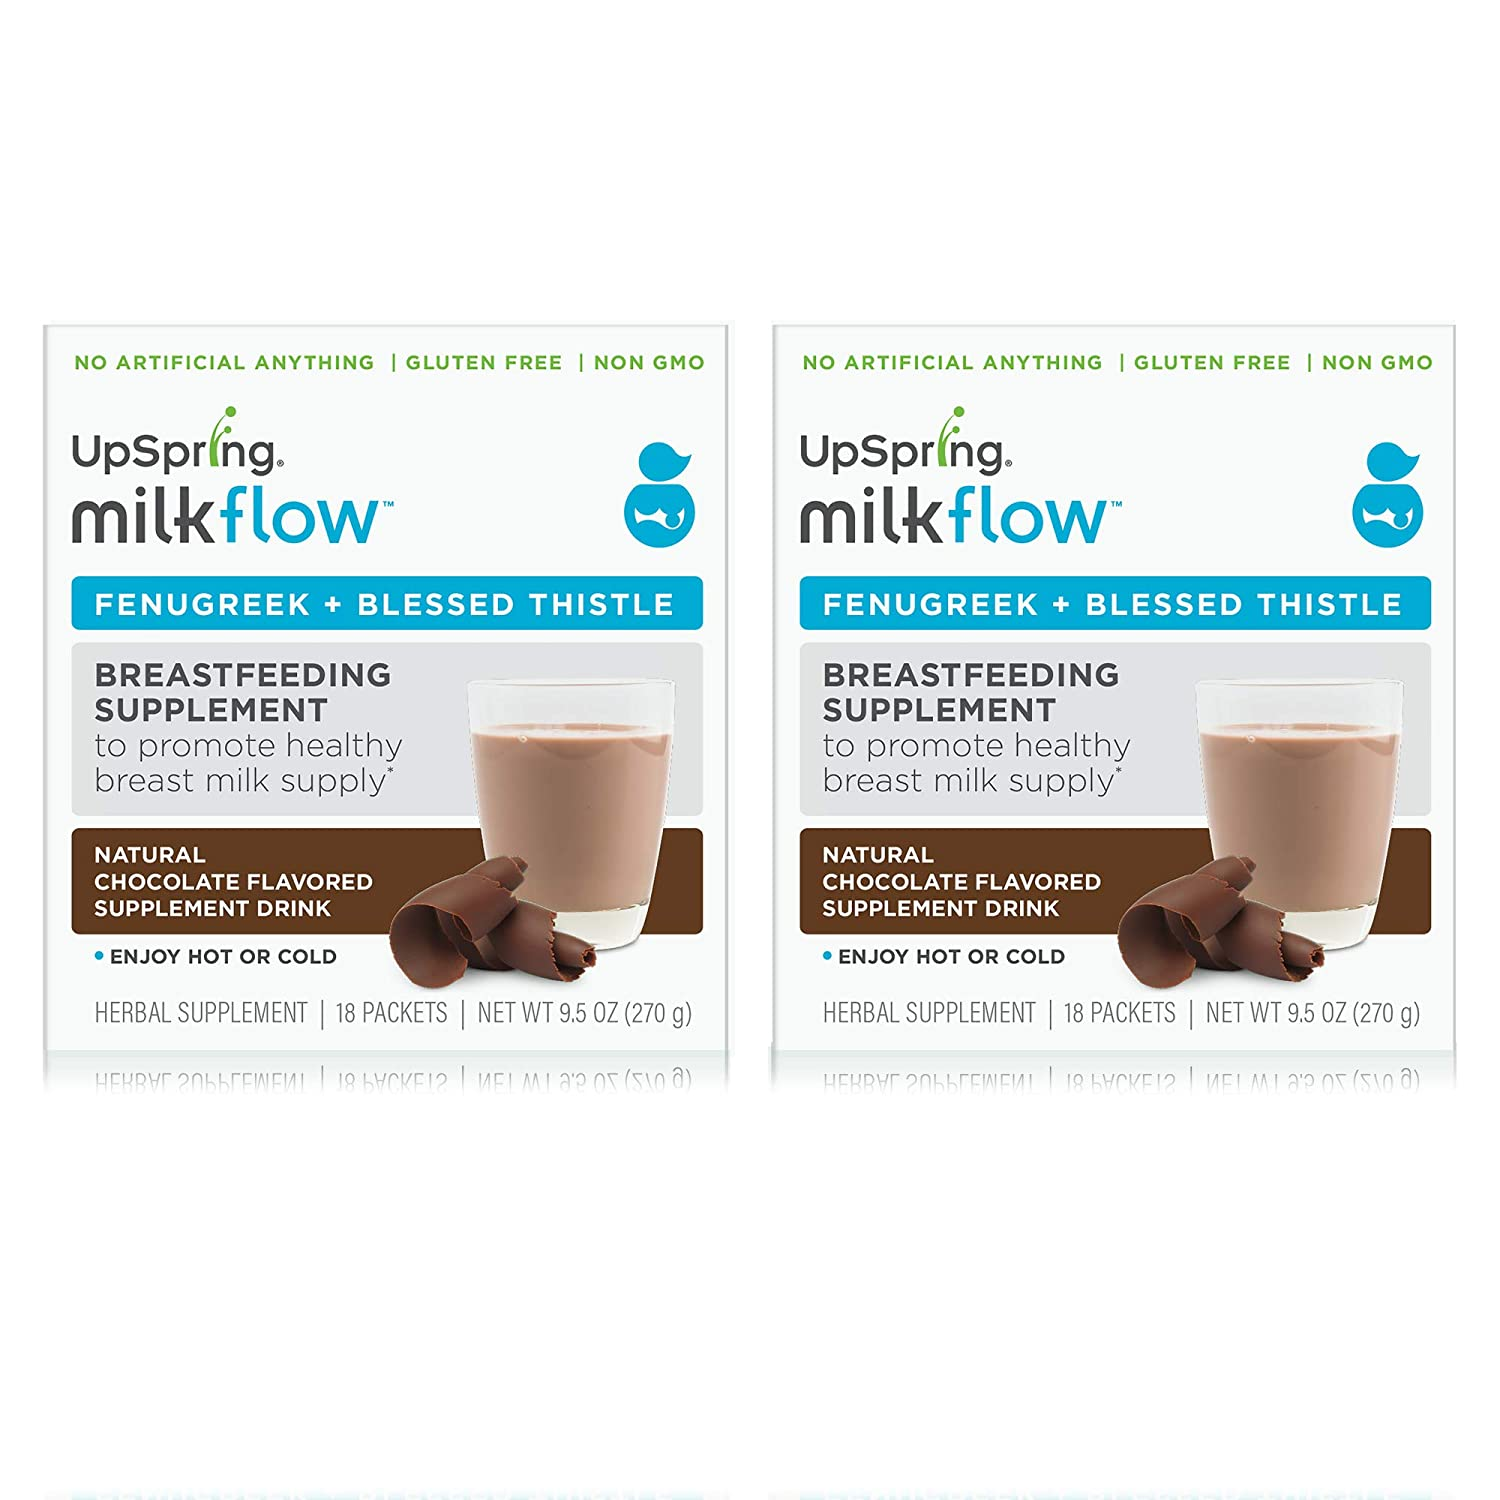 Milkflow Chocolate Fenugreek and Blessed Thistle Powder Drink Mix, by UpSpring Baby, 2 Packs of 18 Each Box, Lactation Supplement for Breastfeeding Moms to Promote Healthy Breastmilk Supply